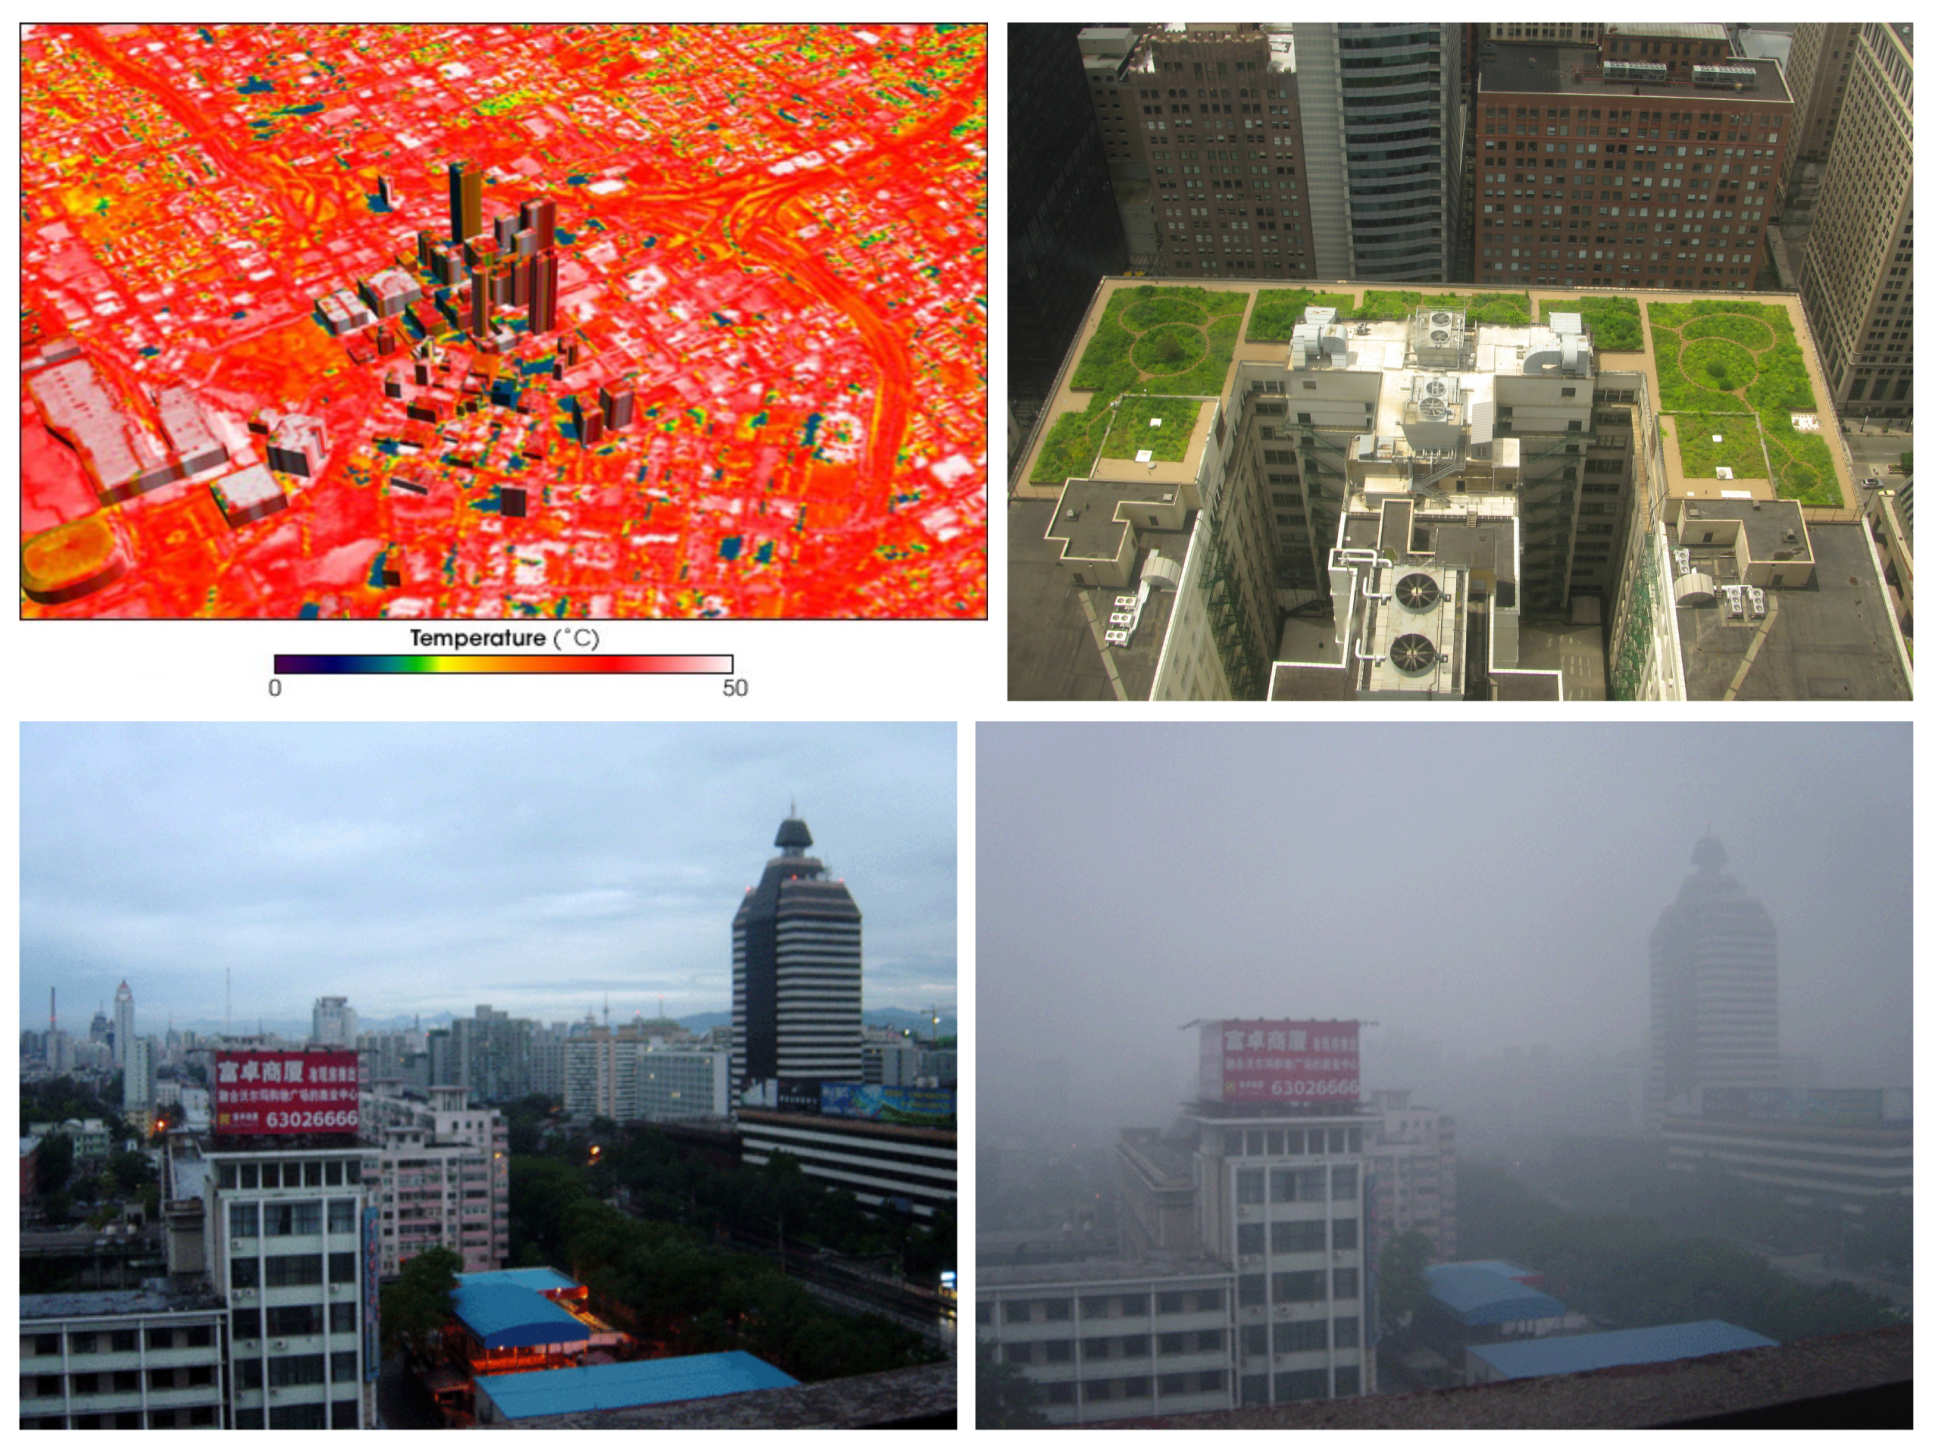 [Top-left] Urban heat island in Atlanta, USA, [Top-right] Green roof of city hall, Chicago, Illinois, USA, [Bottom] Beijing on a clear and smoggy day